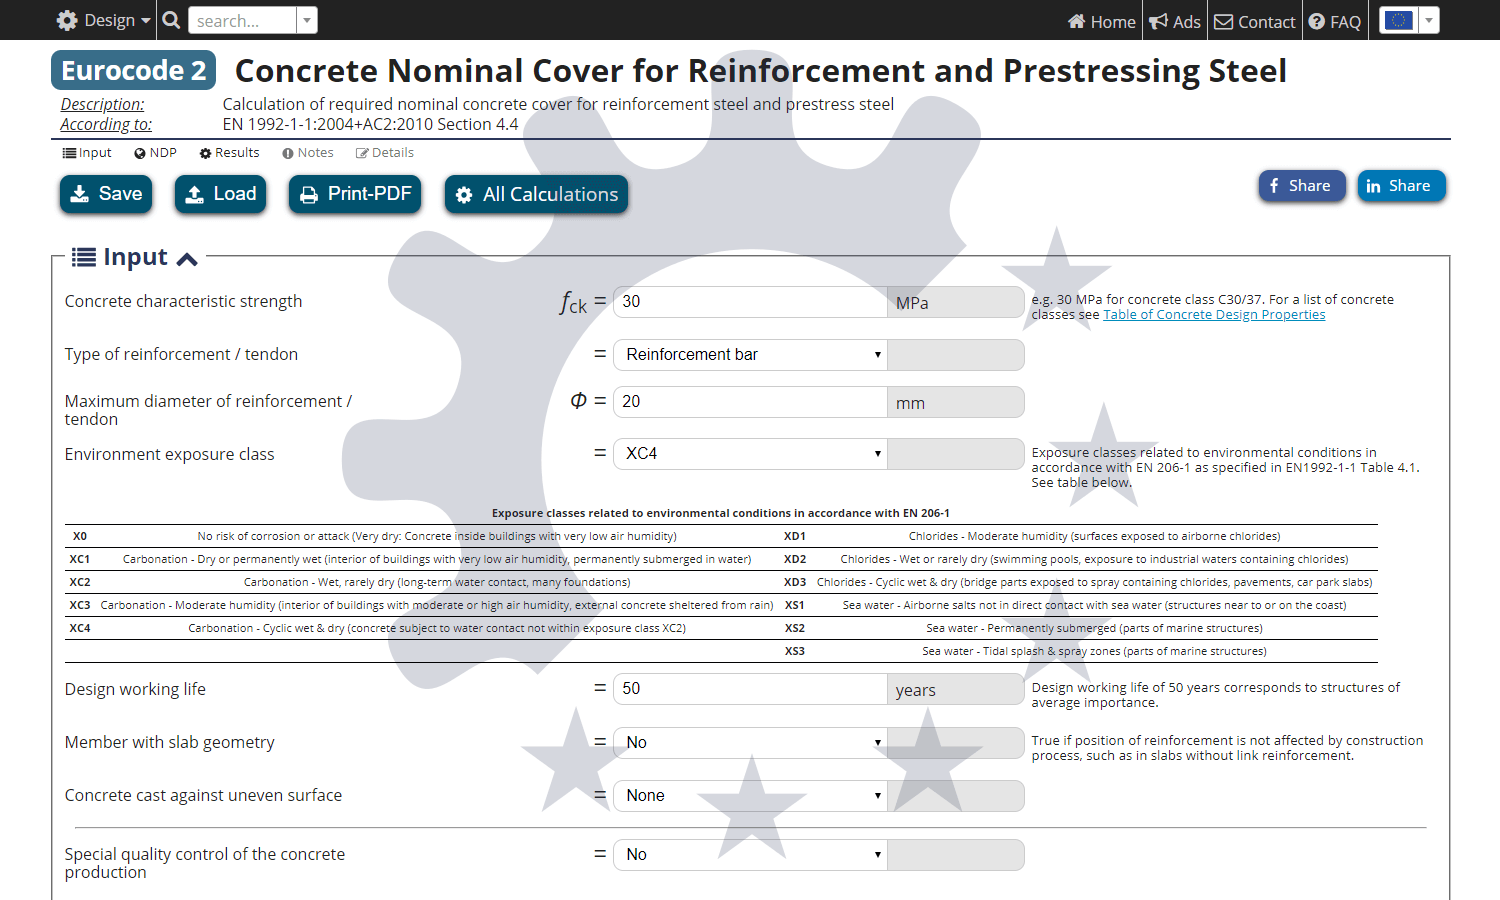 Calculation of concrete nominal cover for reinforcement - Eurocode 2